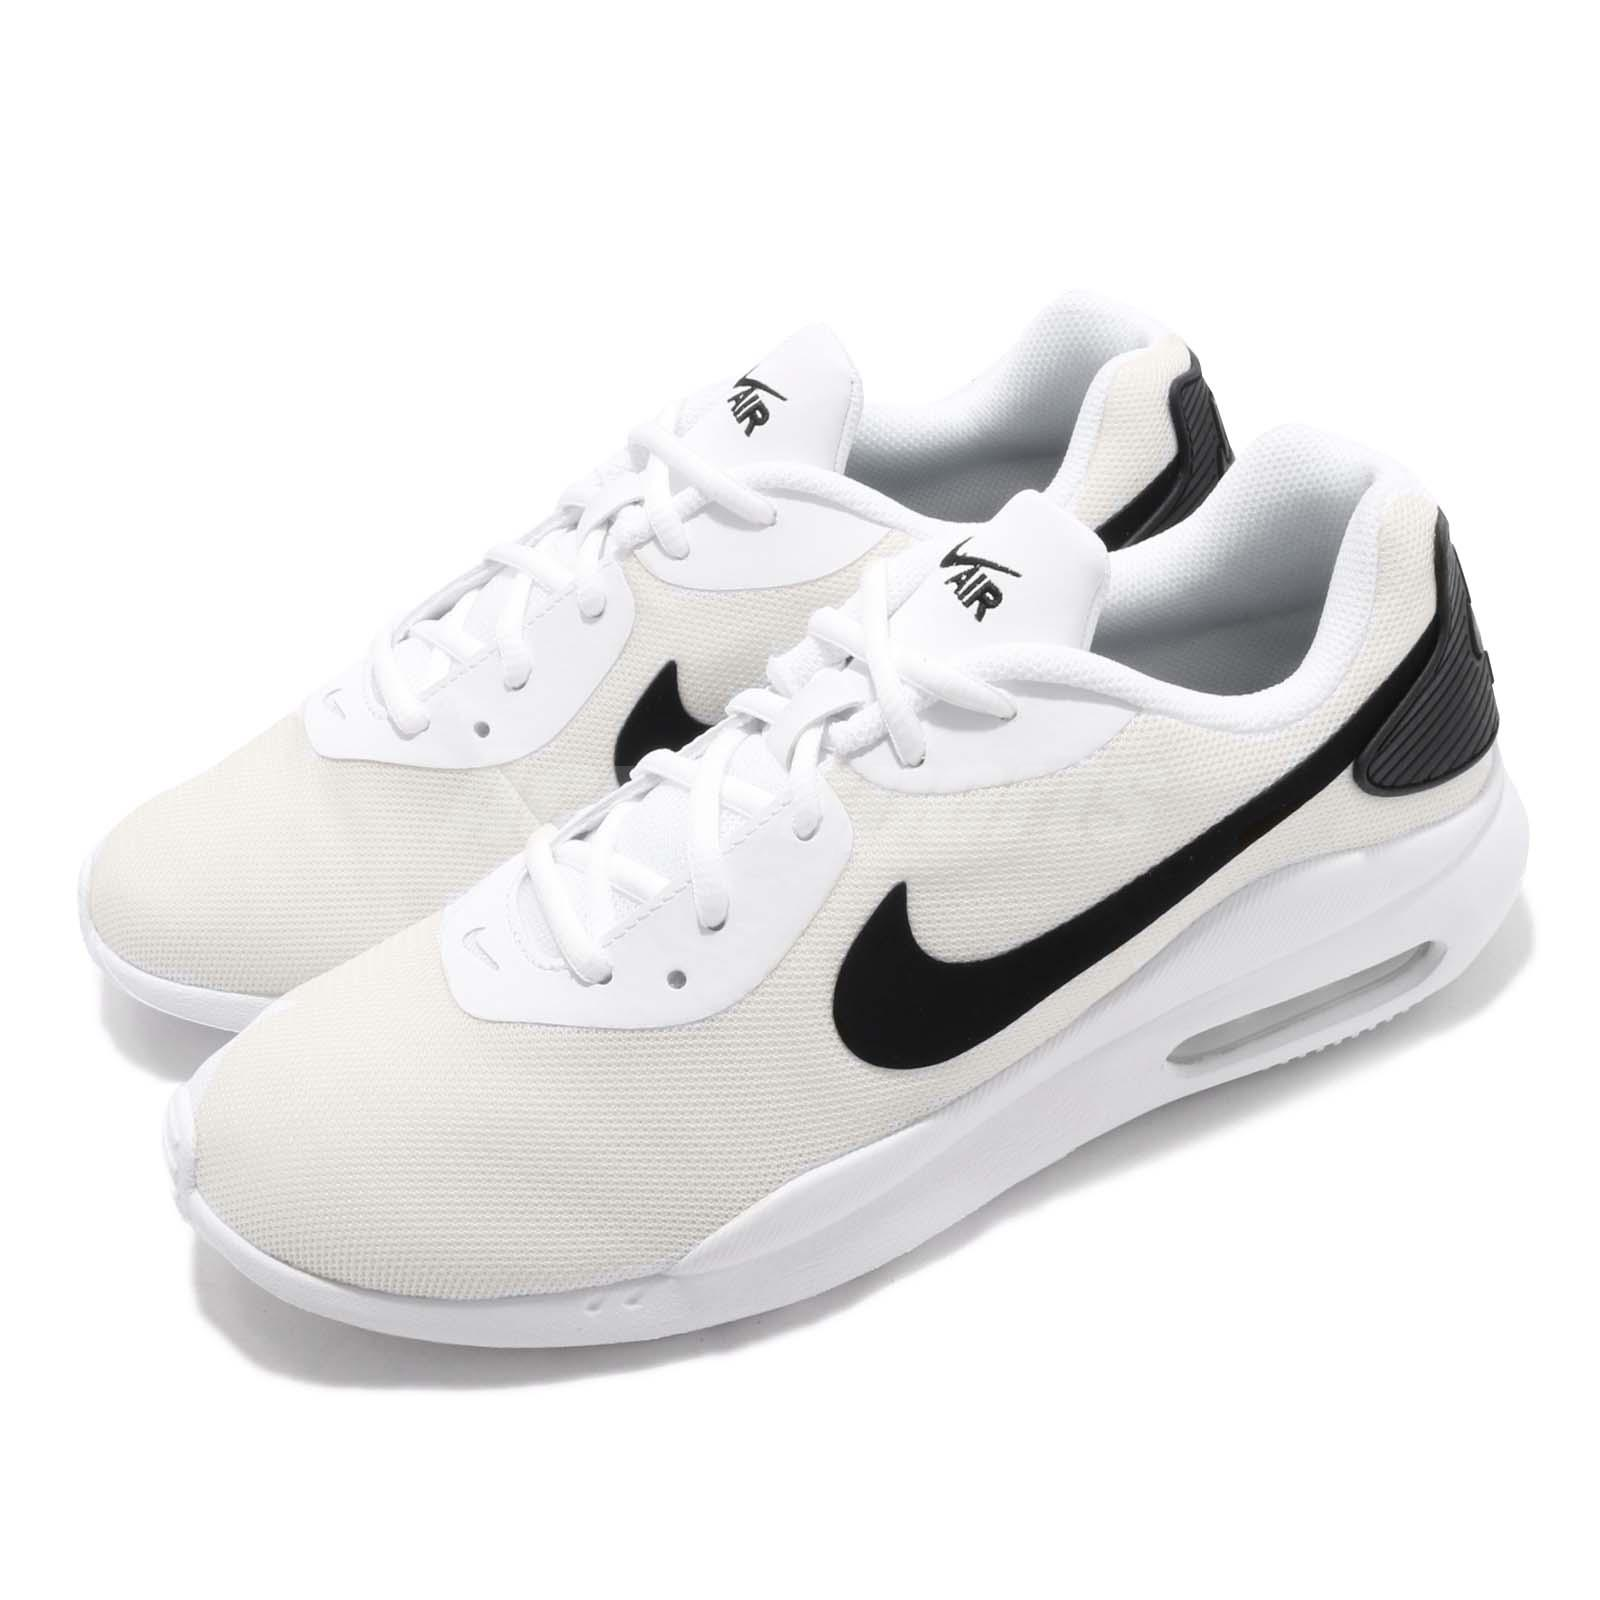 best sneakers b2c91 bbcea Details about Nike Wmns Air Max Oketo White Black Women Running Casual Shoe  Sneaker AQ2231-100